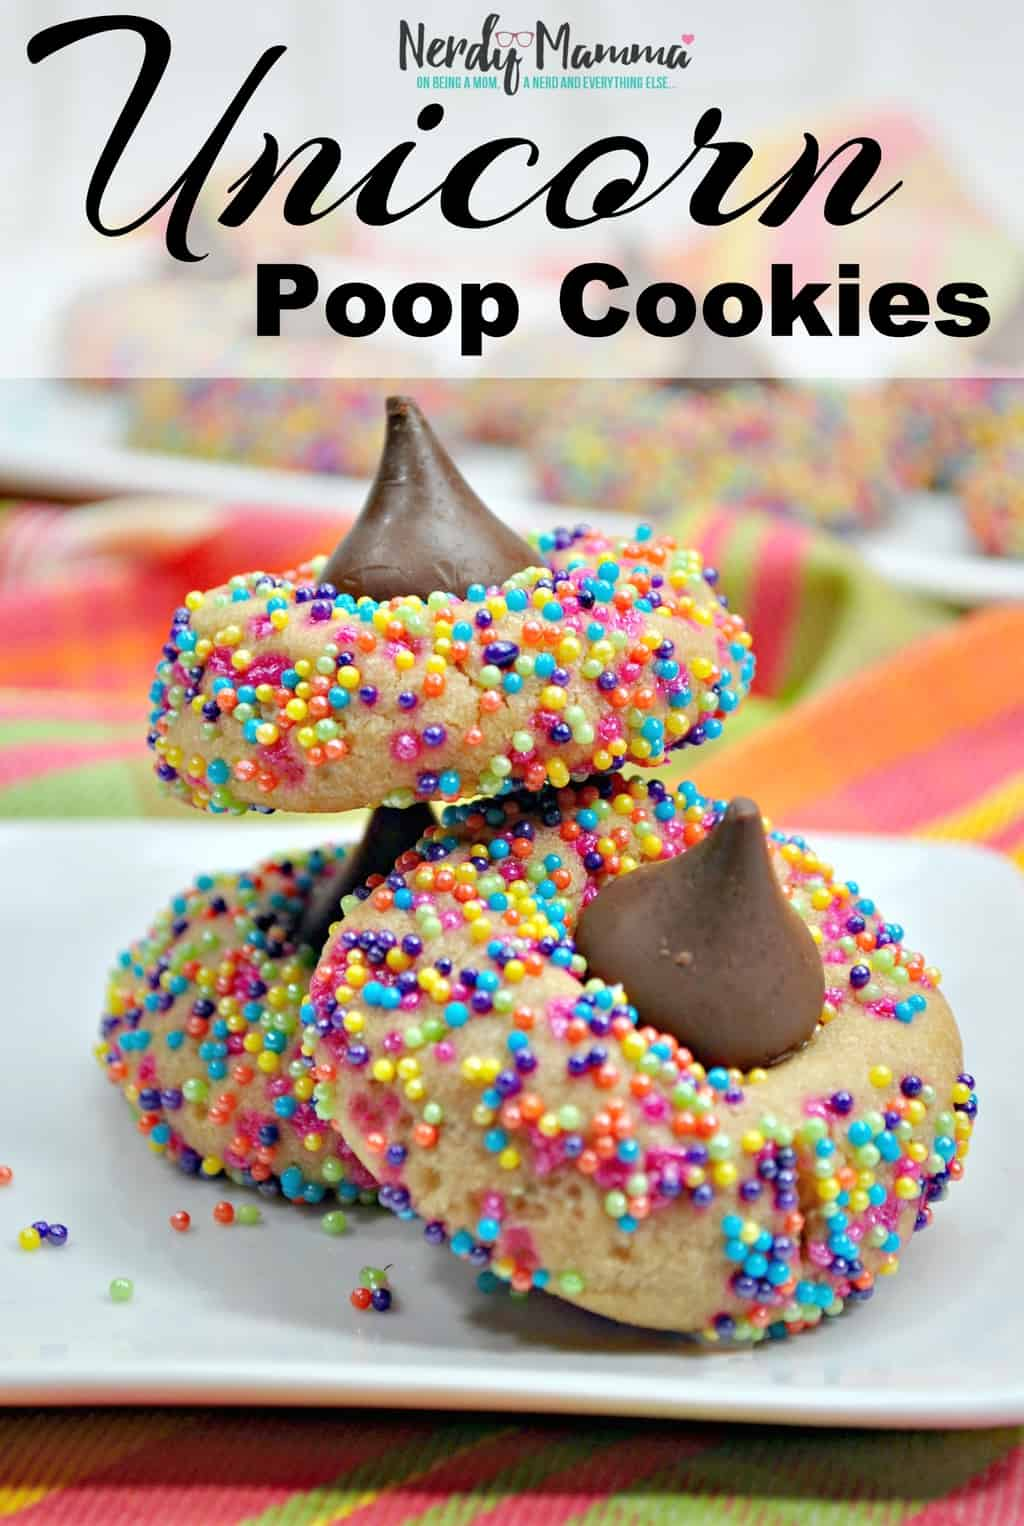 In a world where unicorns and their poop are so cute, I bring you, the best bringing-together of rainbow-goodness and poop: Unicorn Poop Cookies.) Simple, fun and oh, so tasty, these are a super-fun snack for any kid. #nerdymammablog #unicorn #unicornpoop #unicornrecipe #unicornpooprecipe